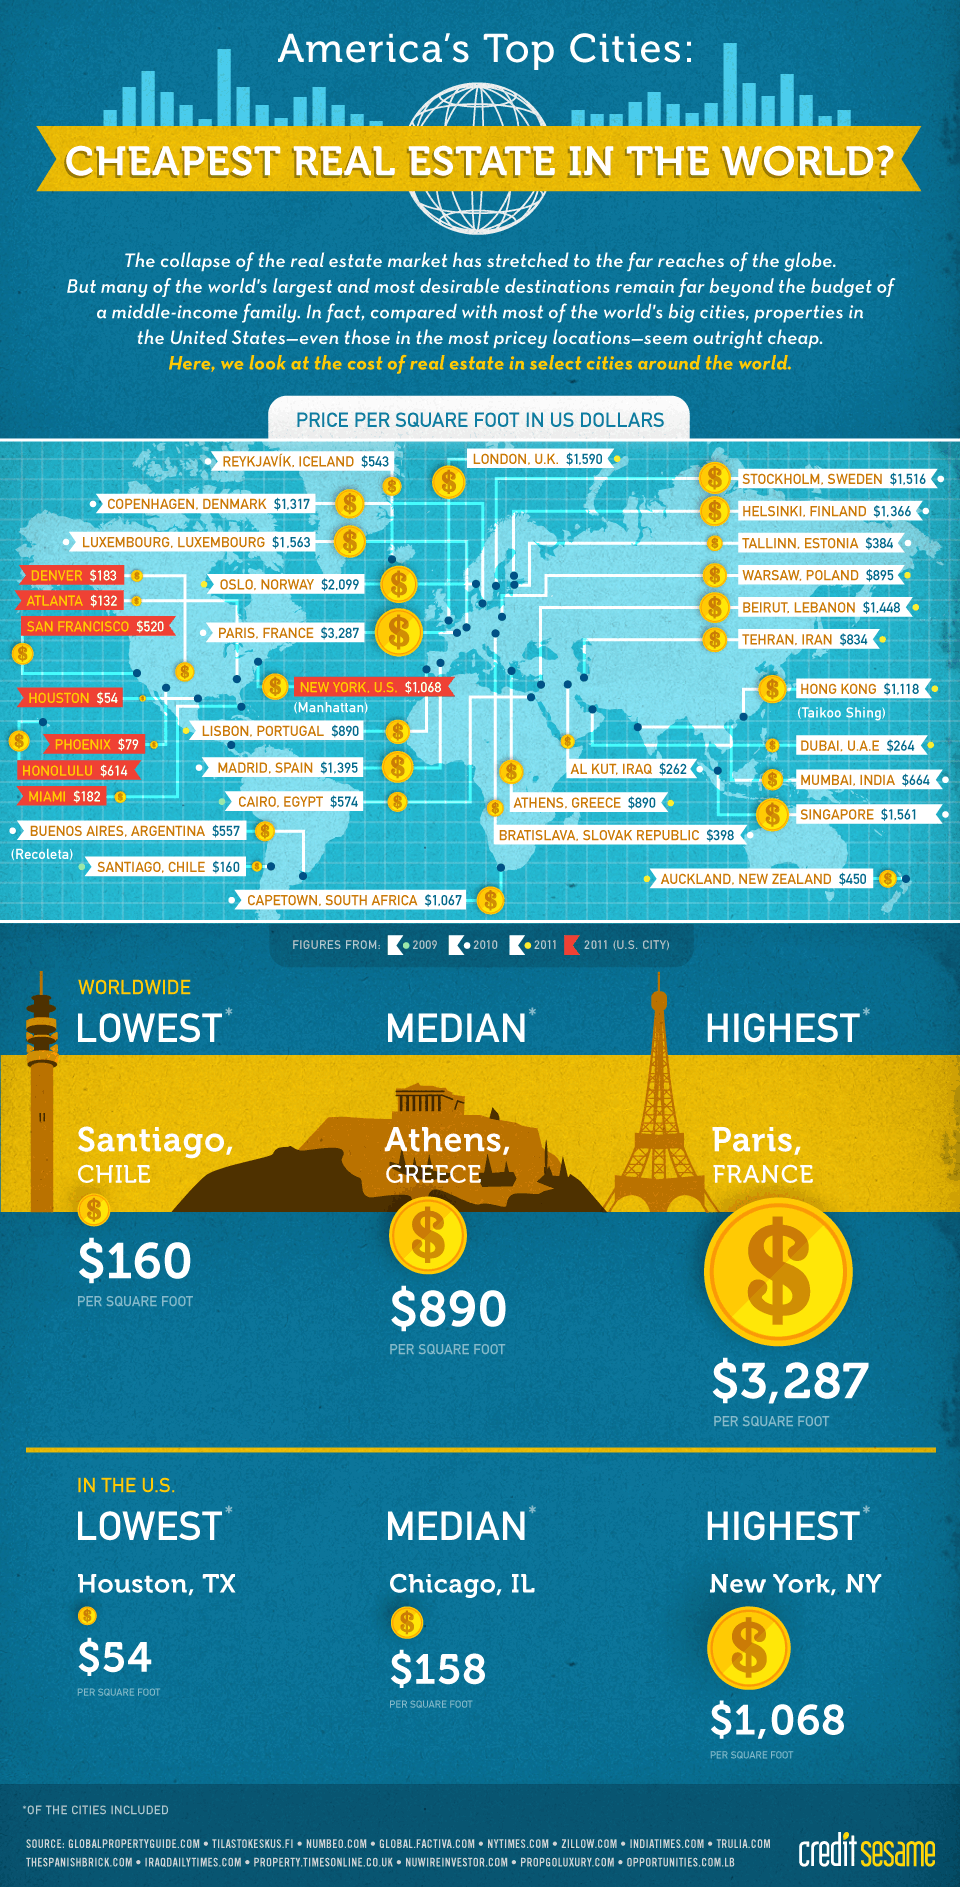 Real Estate Infographic Provided By CreditSesame.com